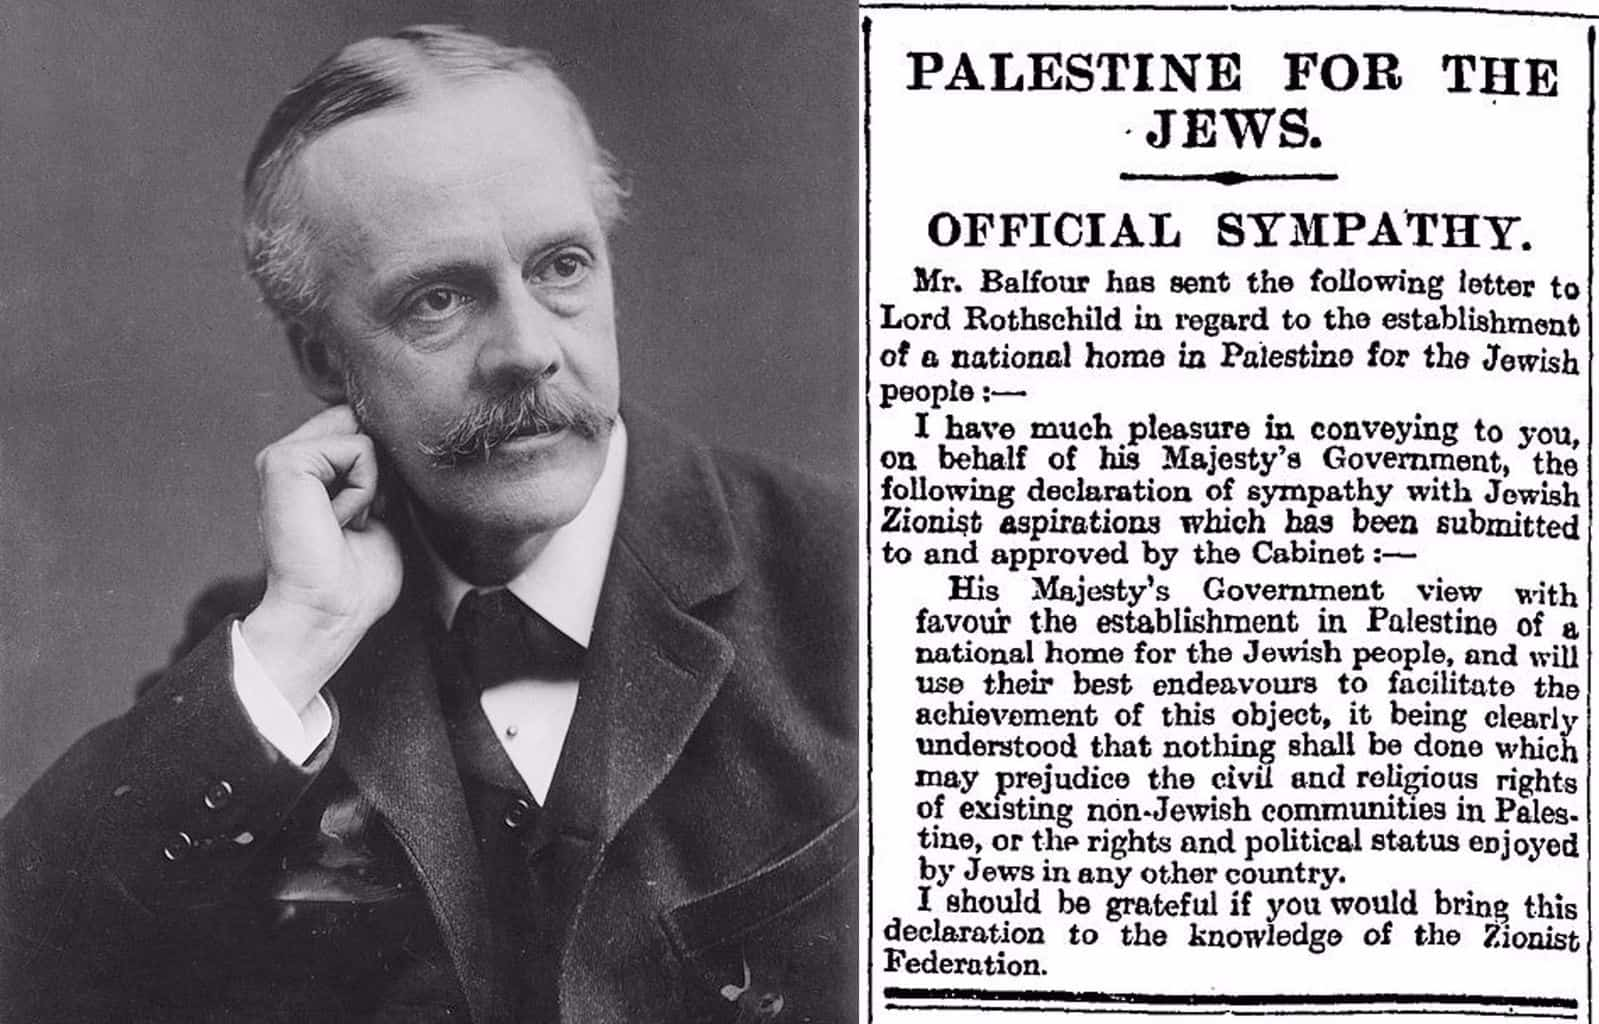 marking-the-100th-anniversary-of-the-balfour-declaration